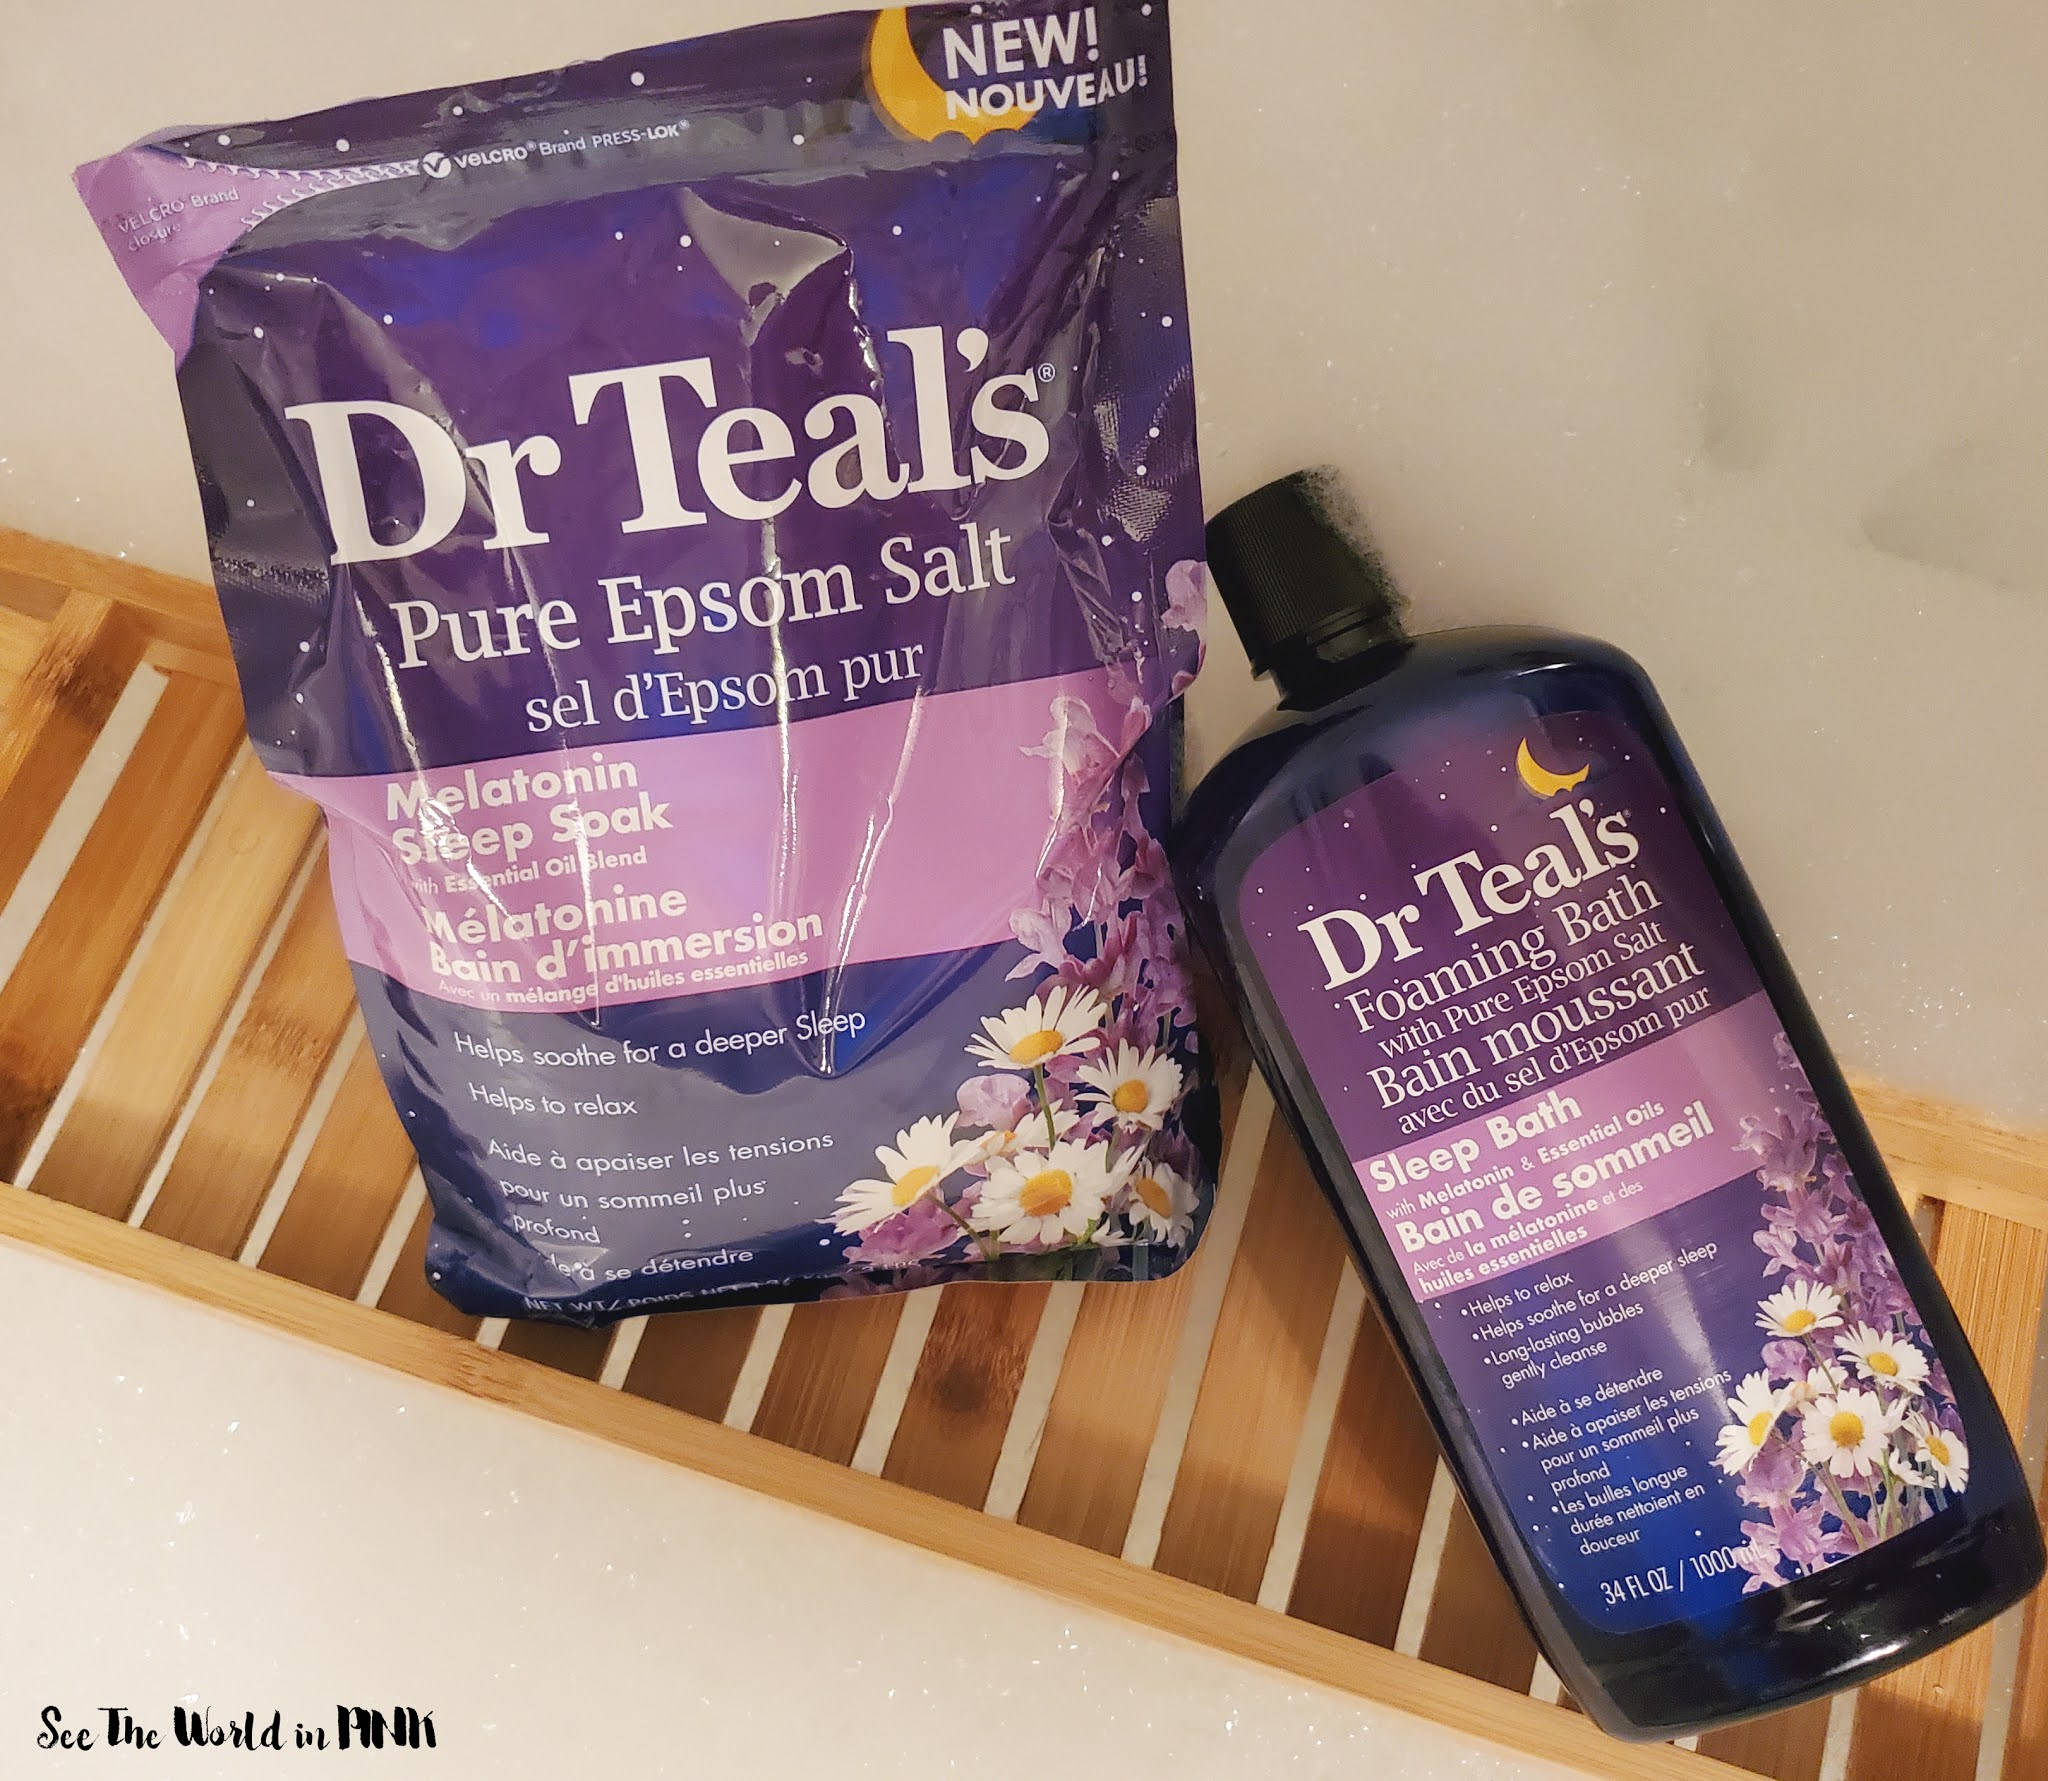 Relaxing Bubblebath Night With Dr. Teals Melatonin Epsom Salts and Foaming Bath